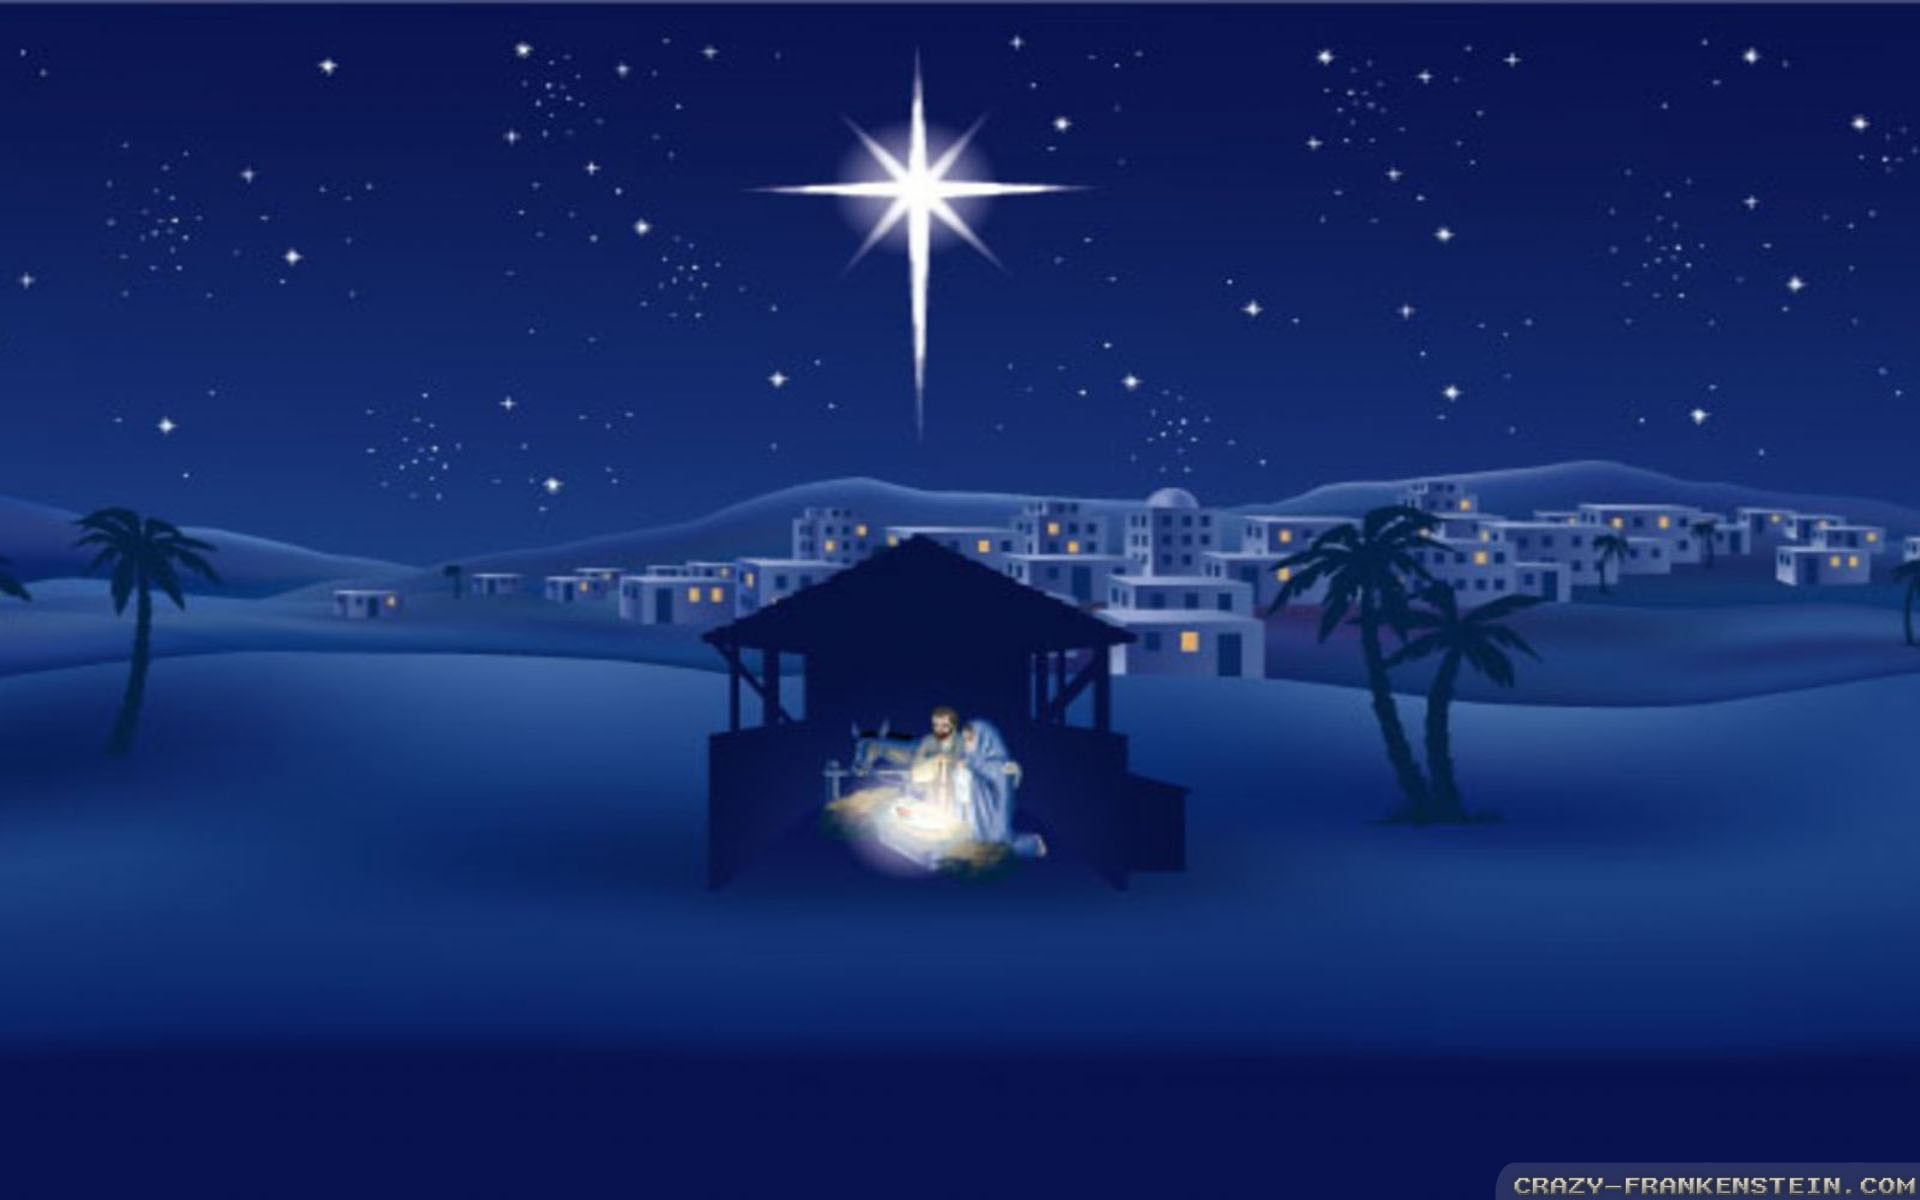 Wallpaper: The Birth Of Christ Religious wallpapers. Resolution: 1024×768    1280×1024   1600×1200. Widescreen Res: 1440×900   1680×1050   1920×1200